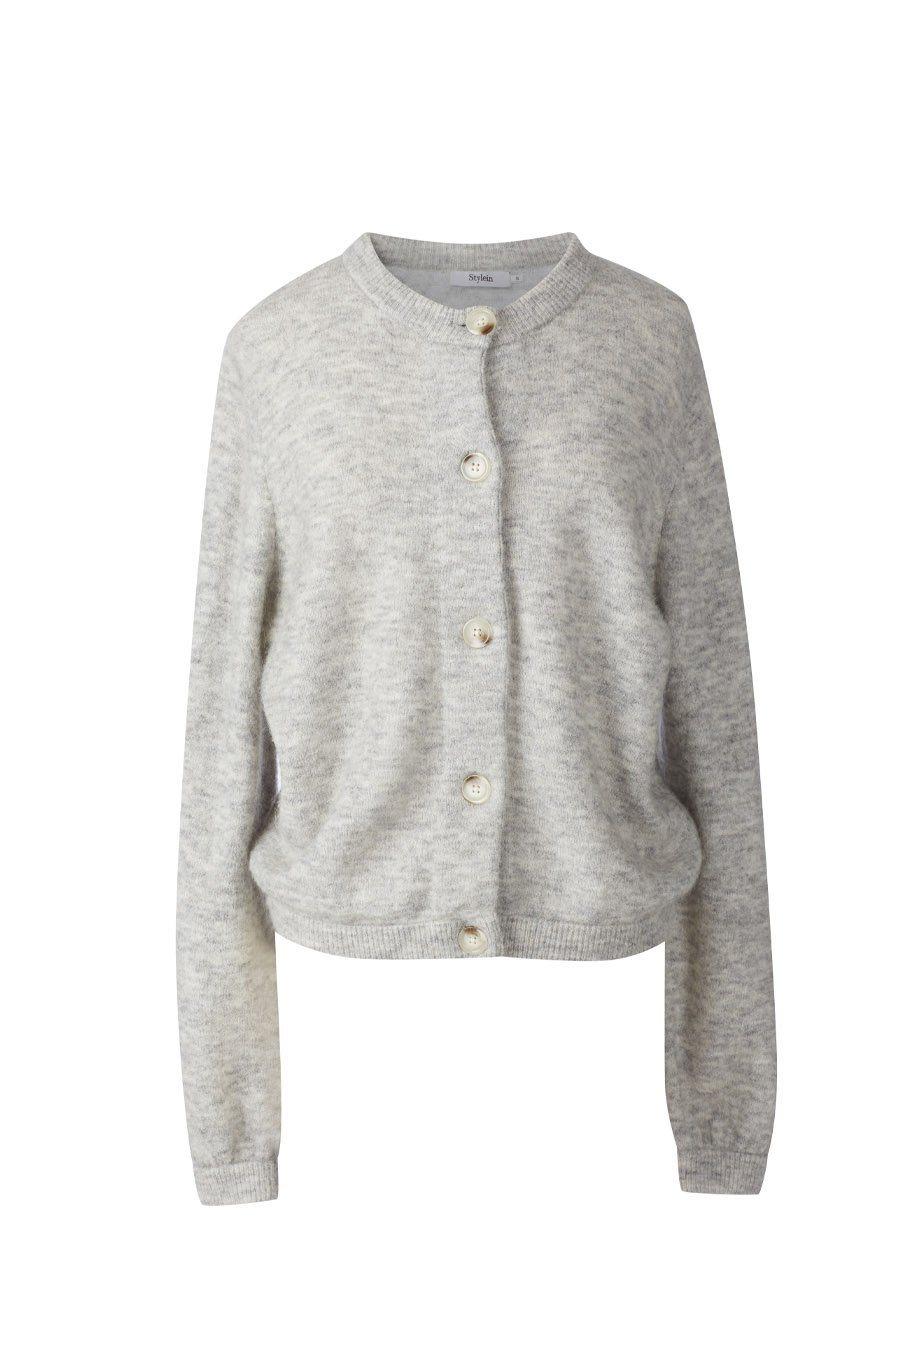 EZIO SWEATER - LIGHT GREY Knitwear Stylein